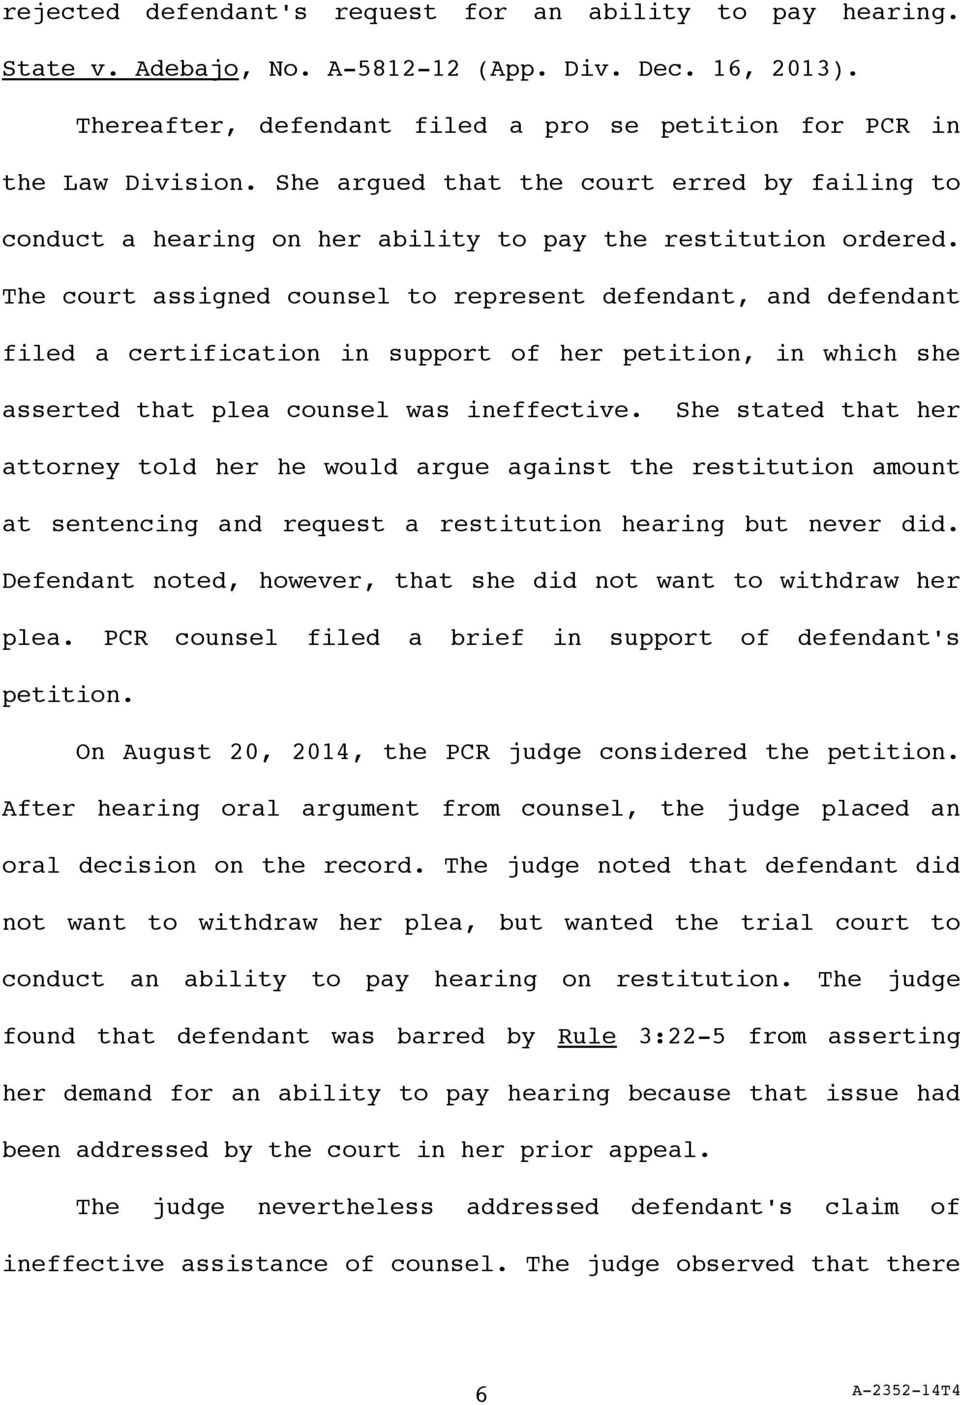 The court assigned counsel to represent defendant, and defendant filed a certification in support of her petition, in which she asserted that plea counsel was ineffective.